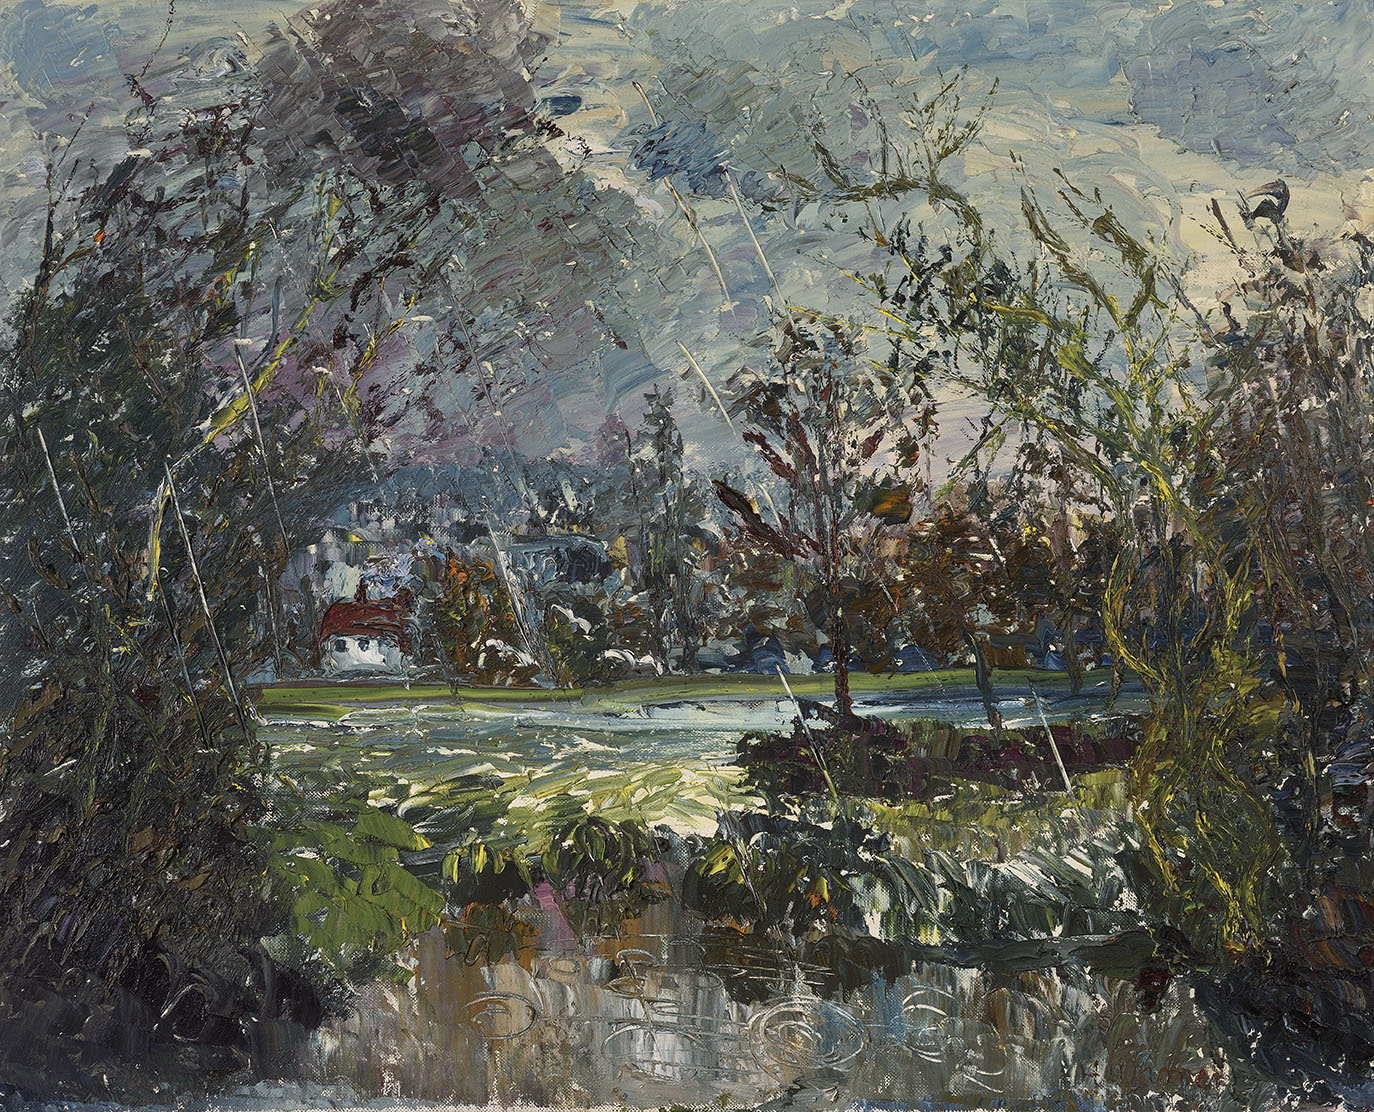 Harold Warner (1914-2010)    Rainstorm nr Lexden,  1989, Oil on canvas, 24 x 30 in  [CAS 24]